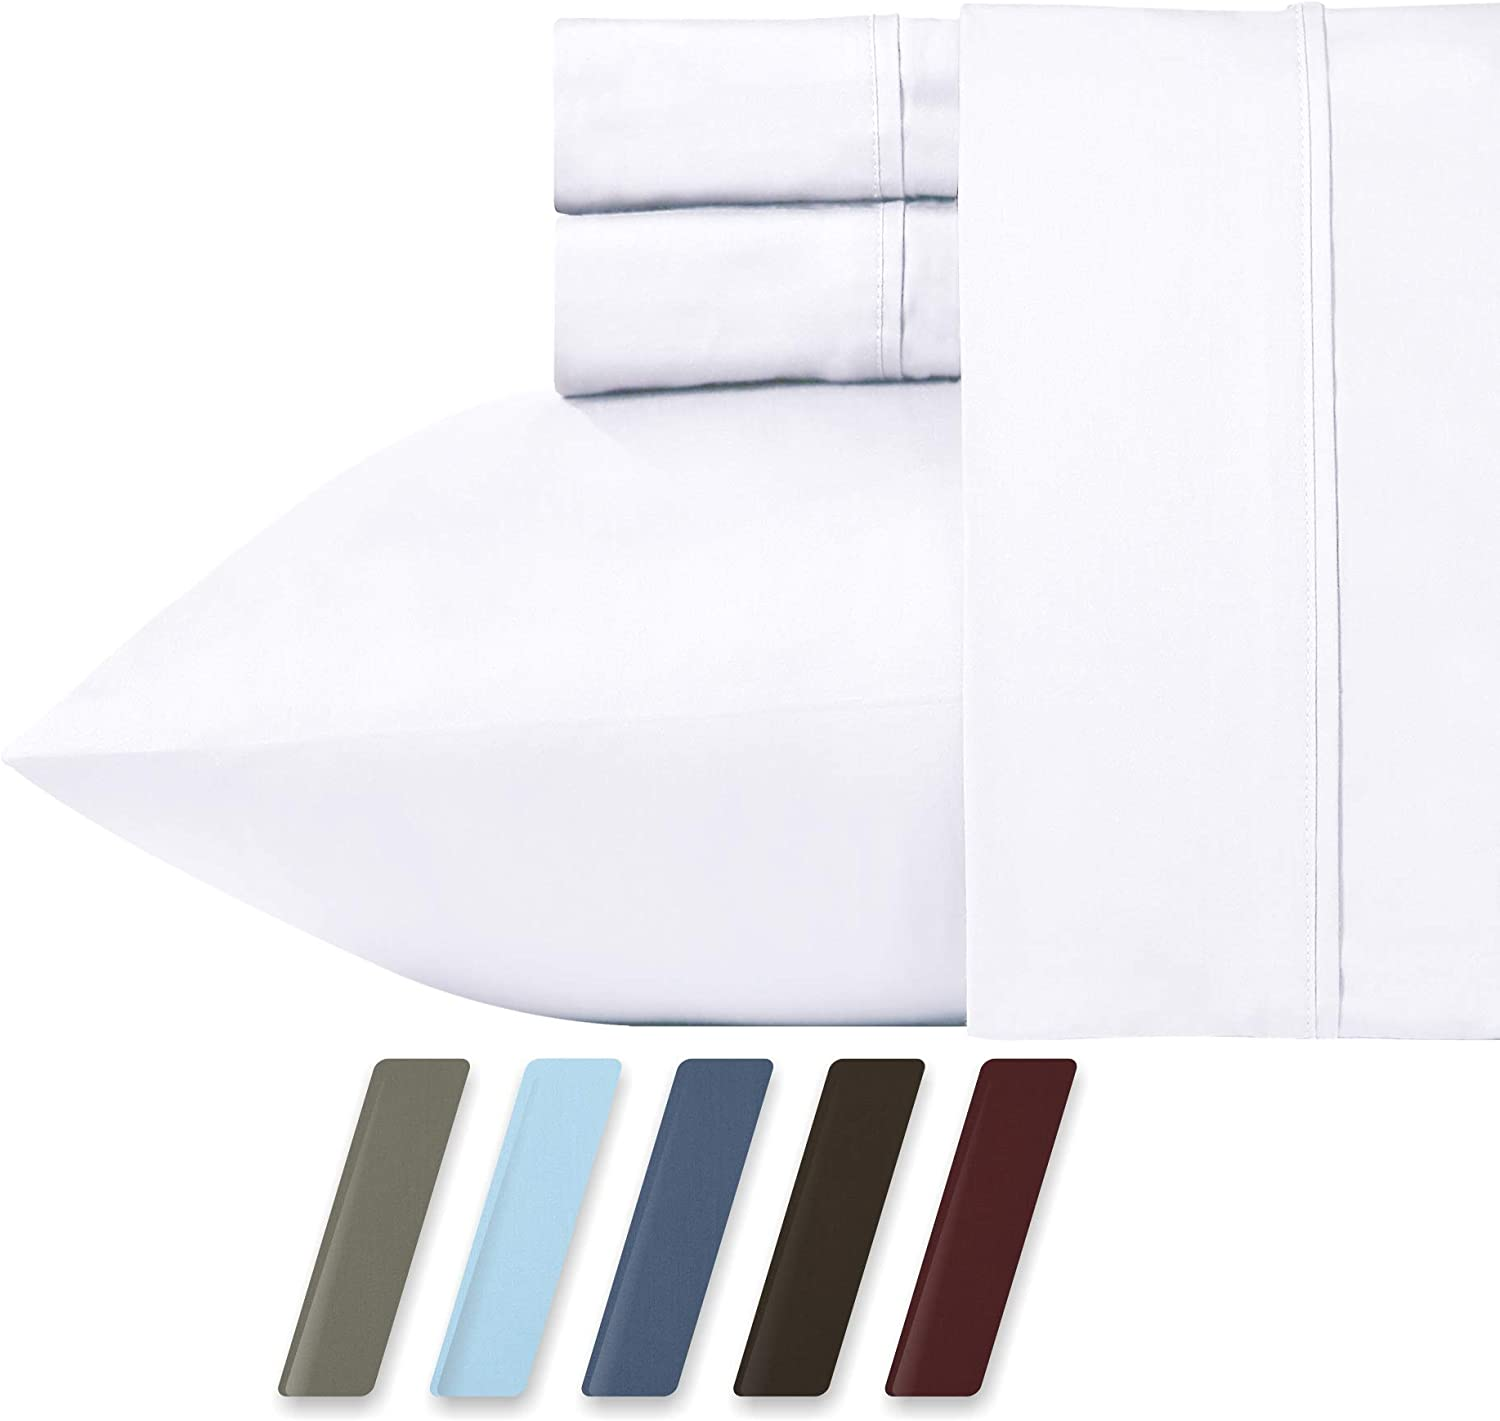 RV Short Queen White Sheet Set for Motorhomes & Camper, 4-Piece 400 Thread Count Egyptian Quality Cotton Sheets, Long Staple Cotton Sateen Weave for Soft Silky Feel, Fits 16  Deep Pocket Mattress